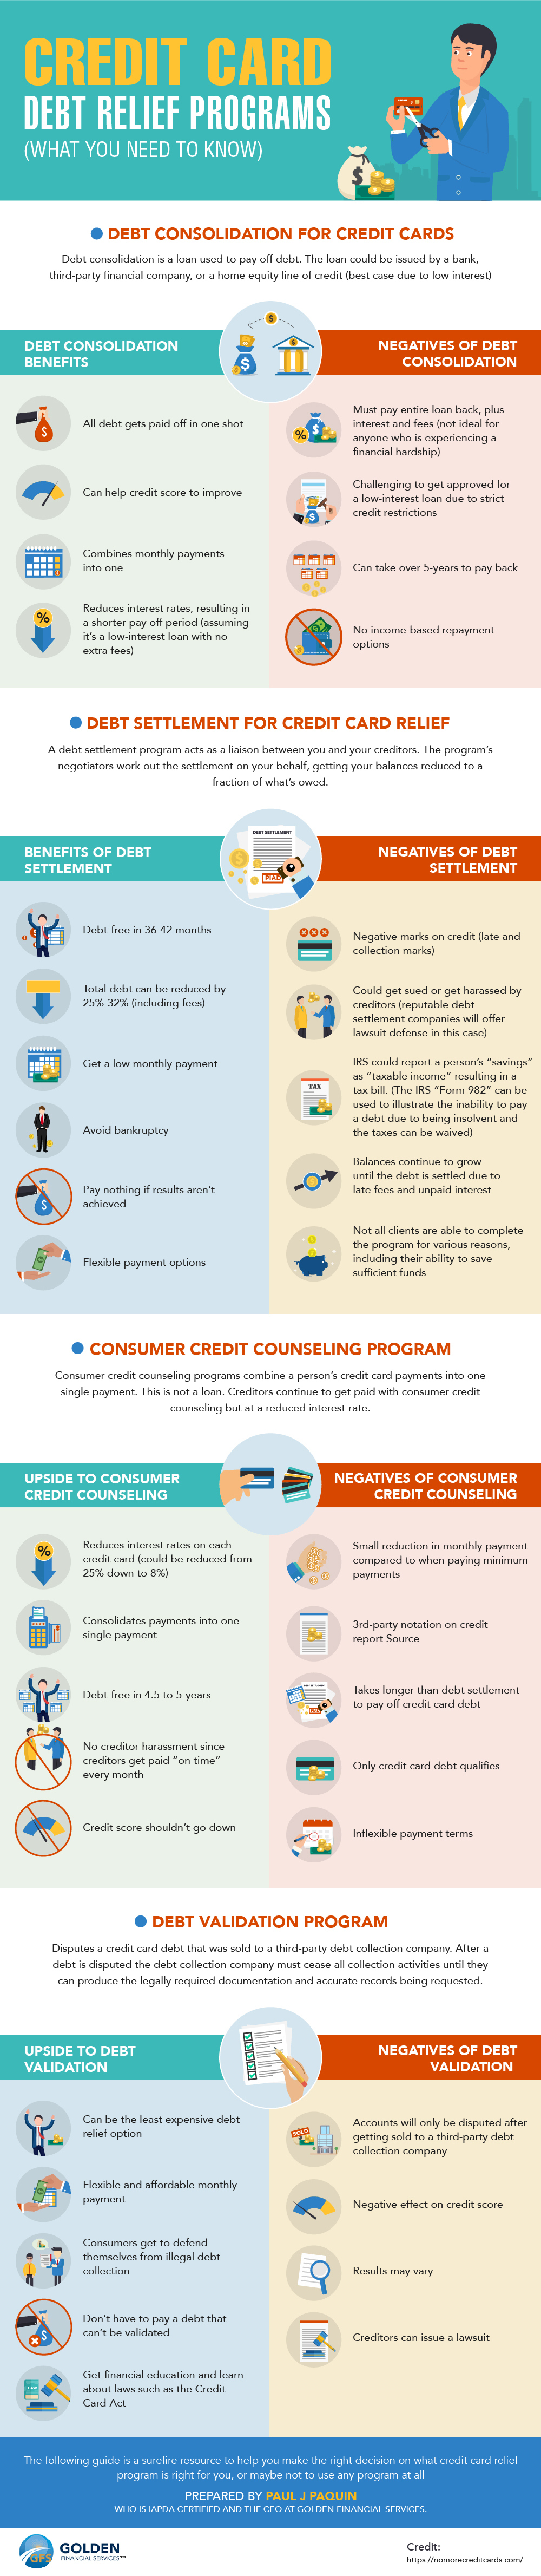 5 Best Options To Eliminate Unsecured Debt In 2018 (& INFOGRAPHIC)